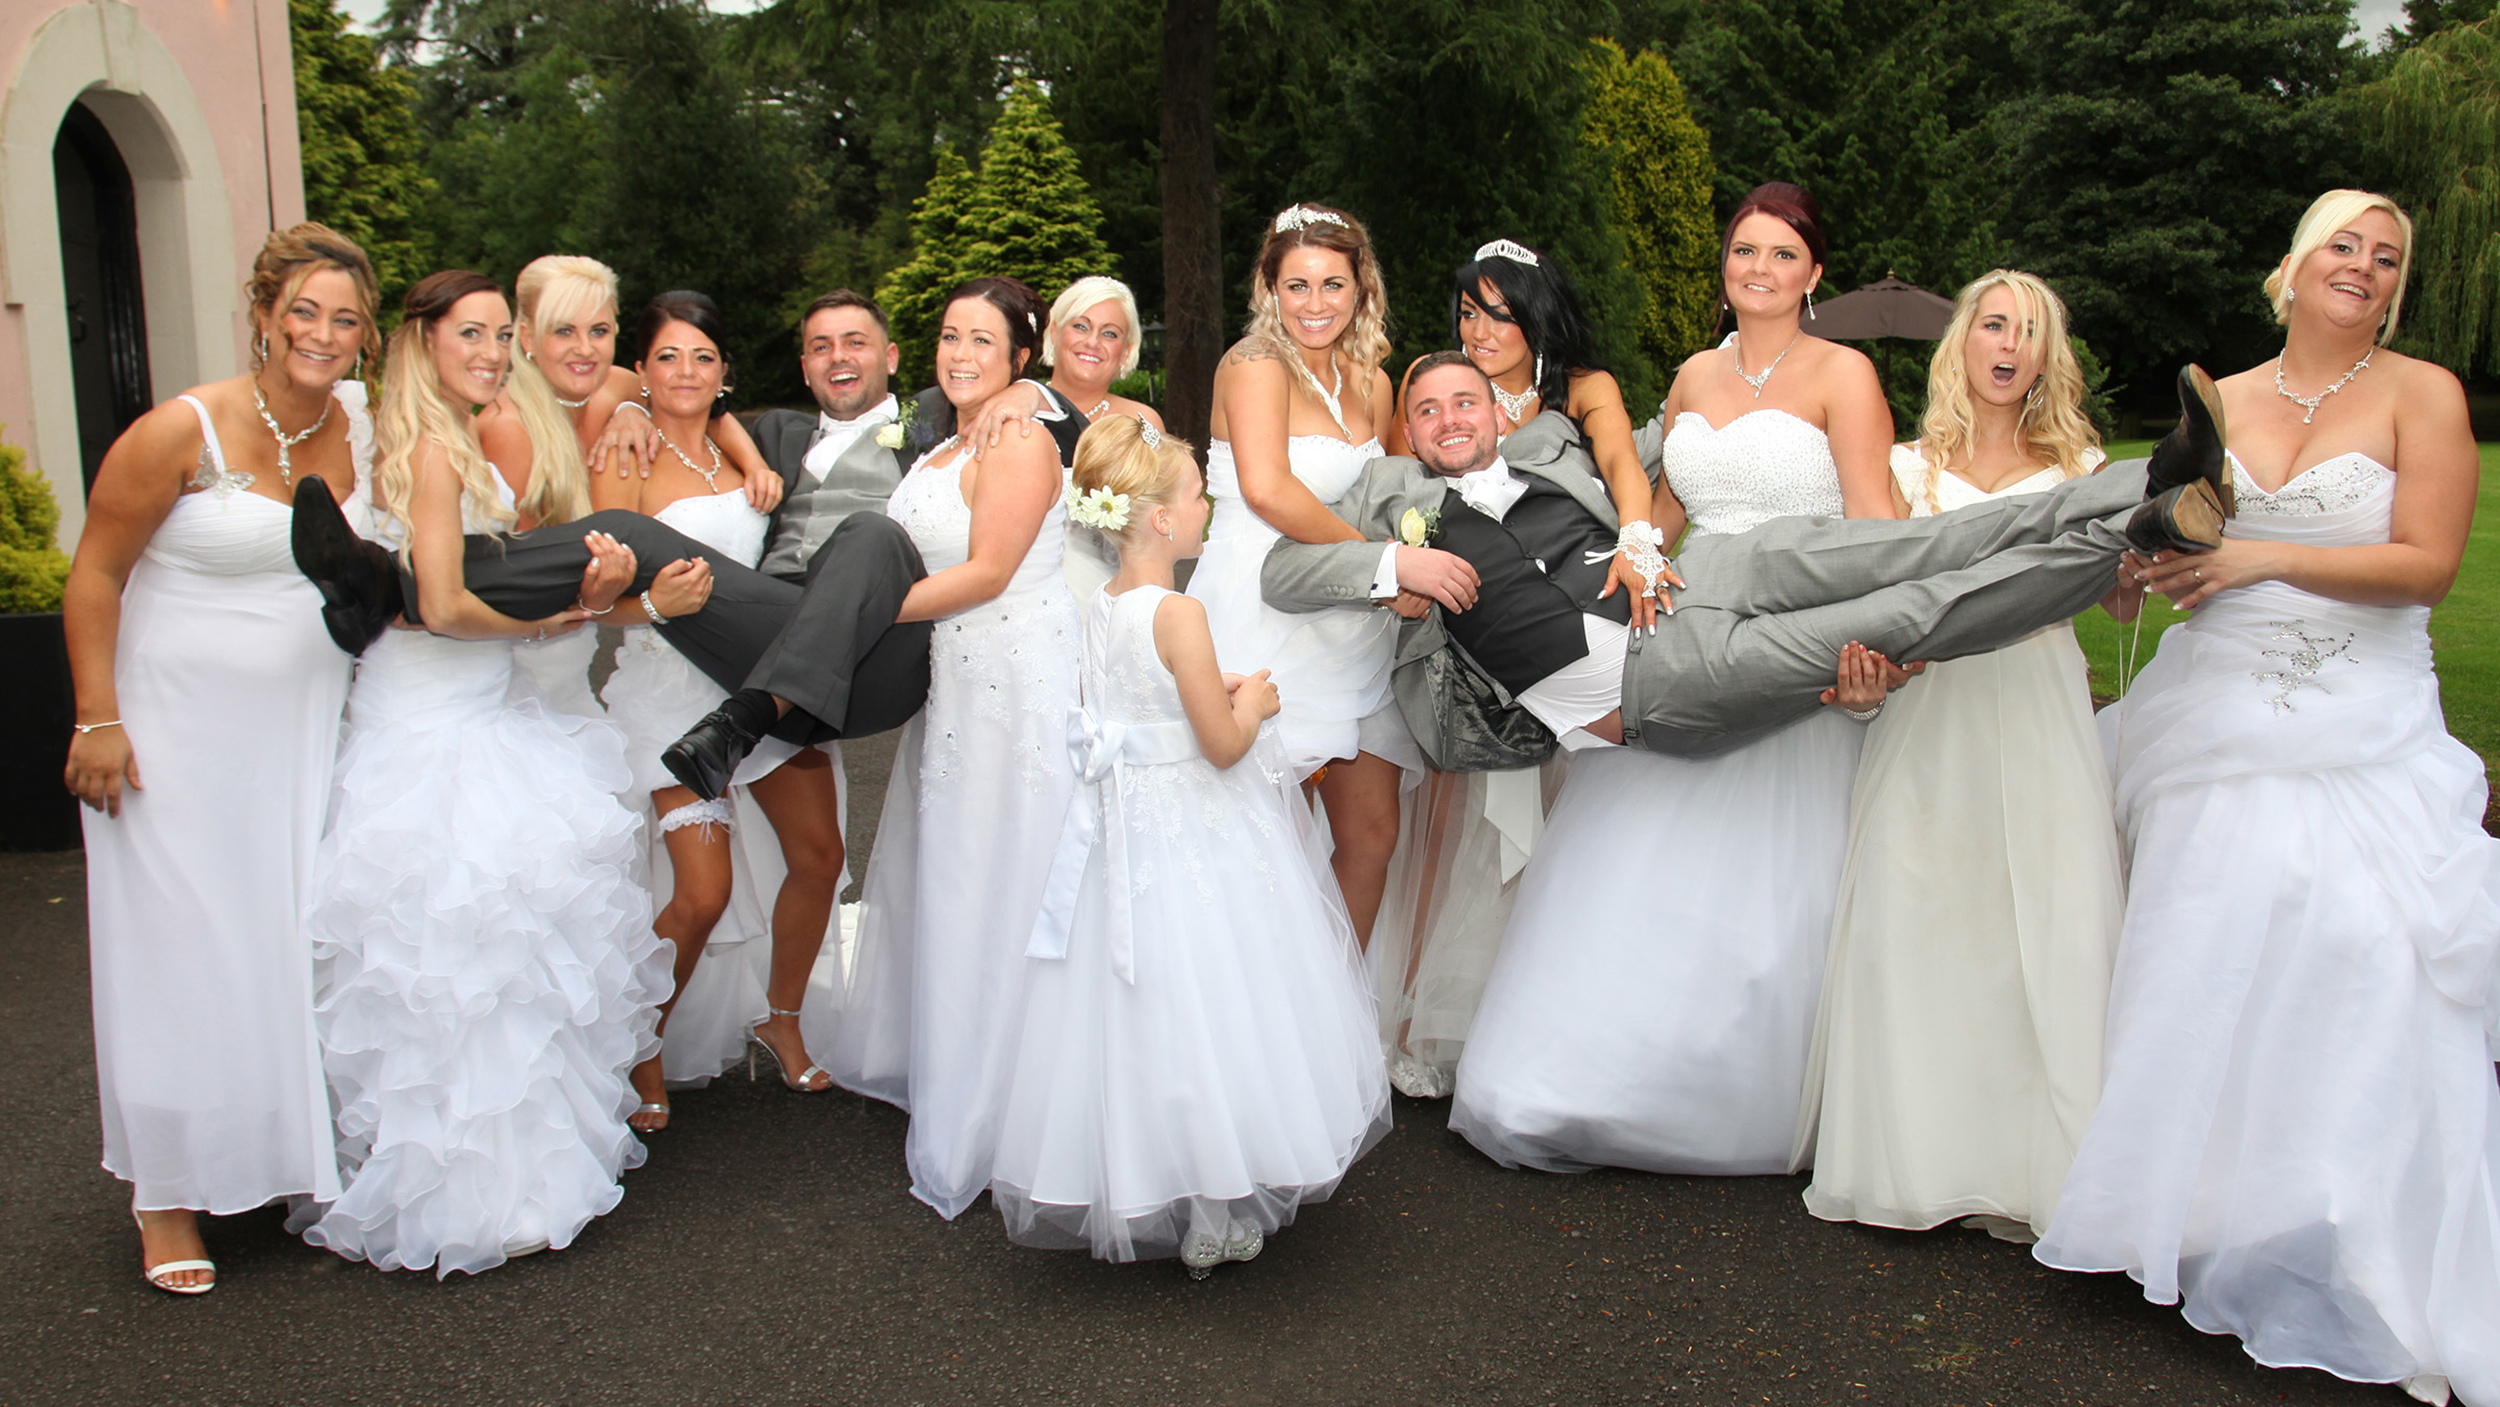 Gay couple s wedding has 10 bridesmaids — all in white